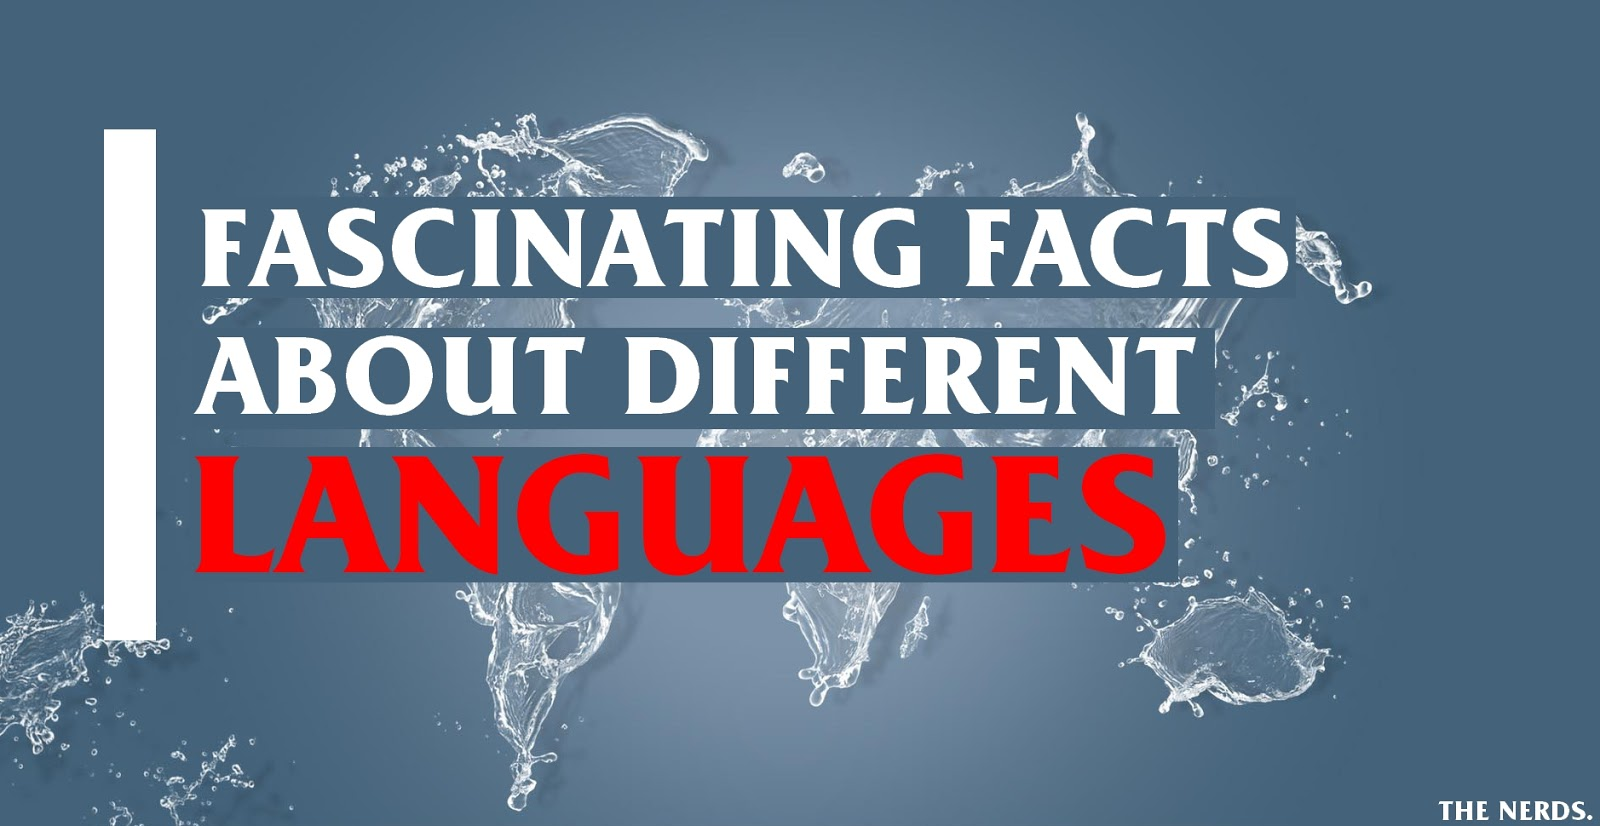 Fascinating facts about the world's languages.